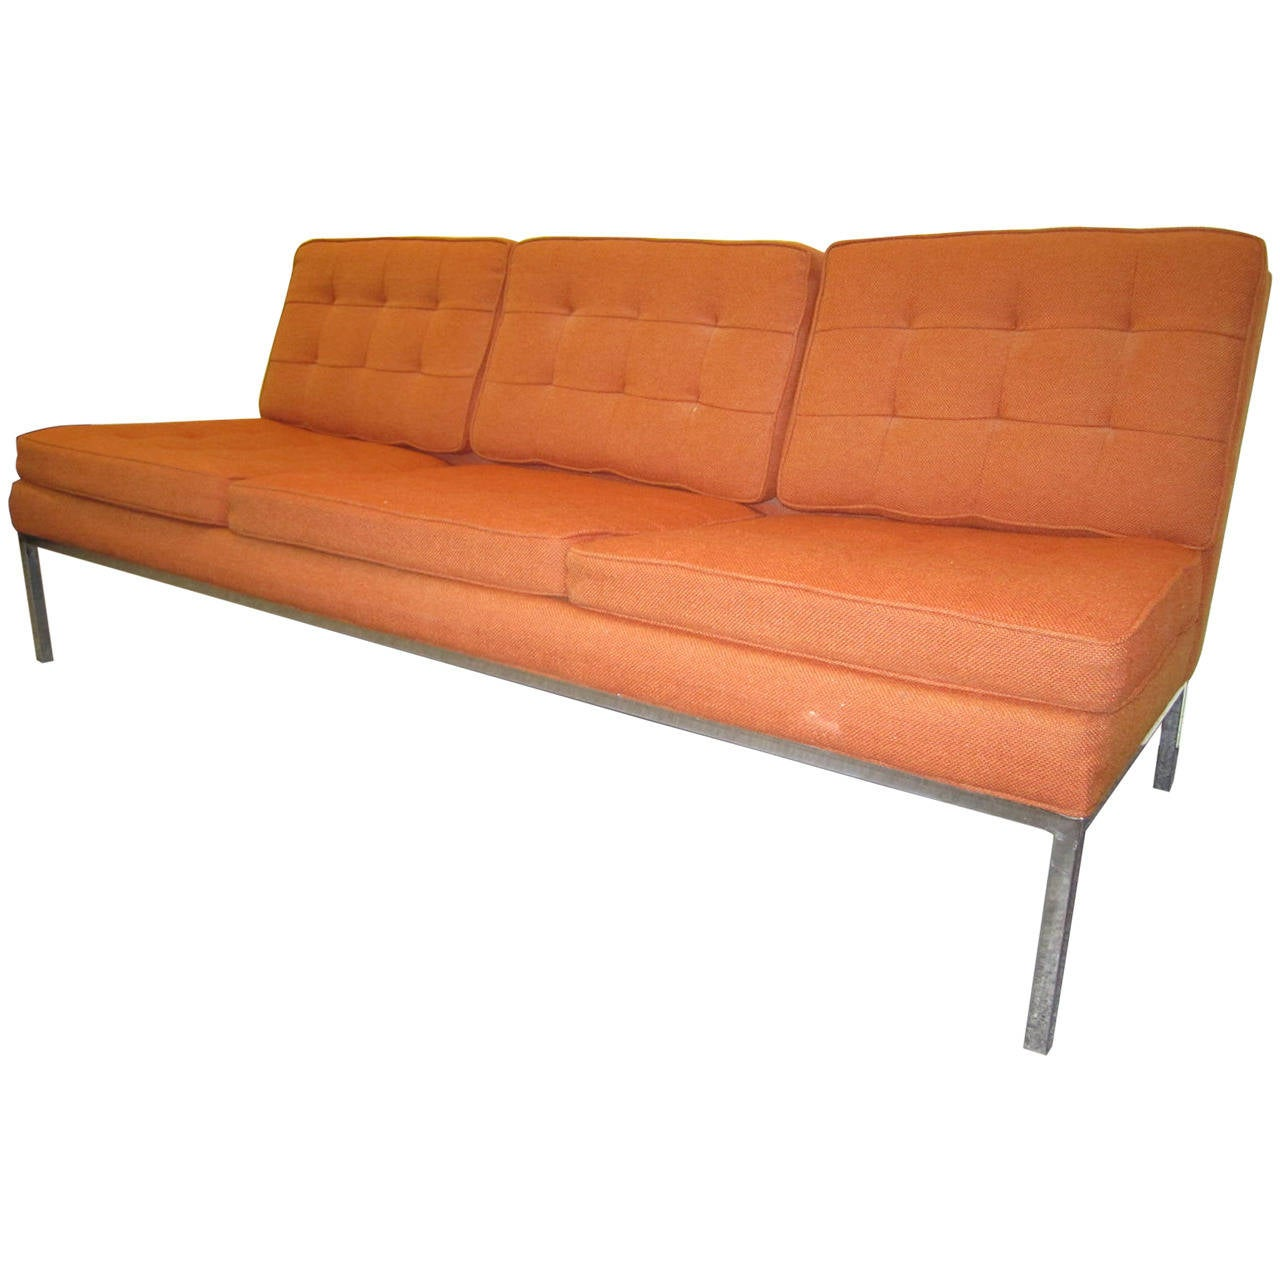 Gorgeous Milo Baughman Signed Armless Sofa Mid-century Modern For ...